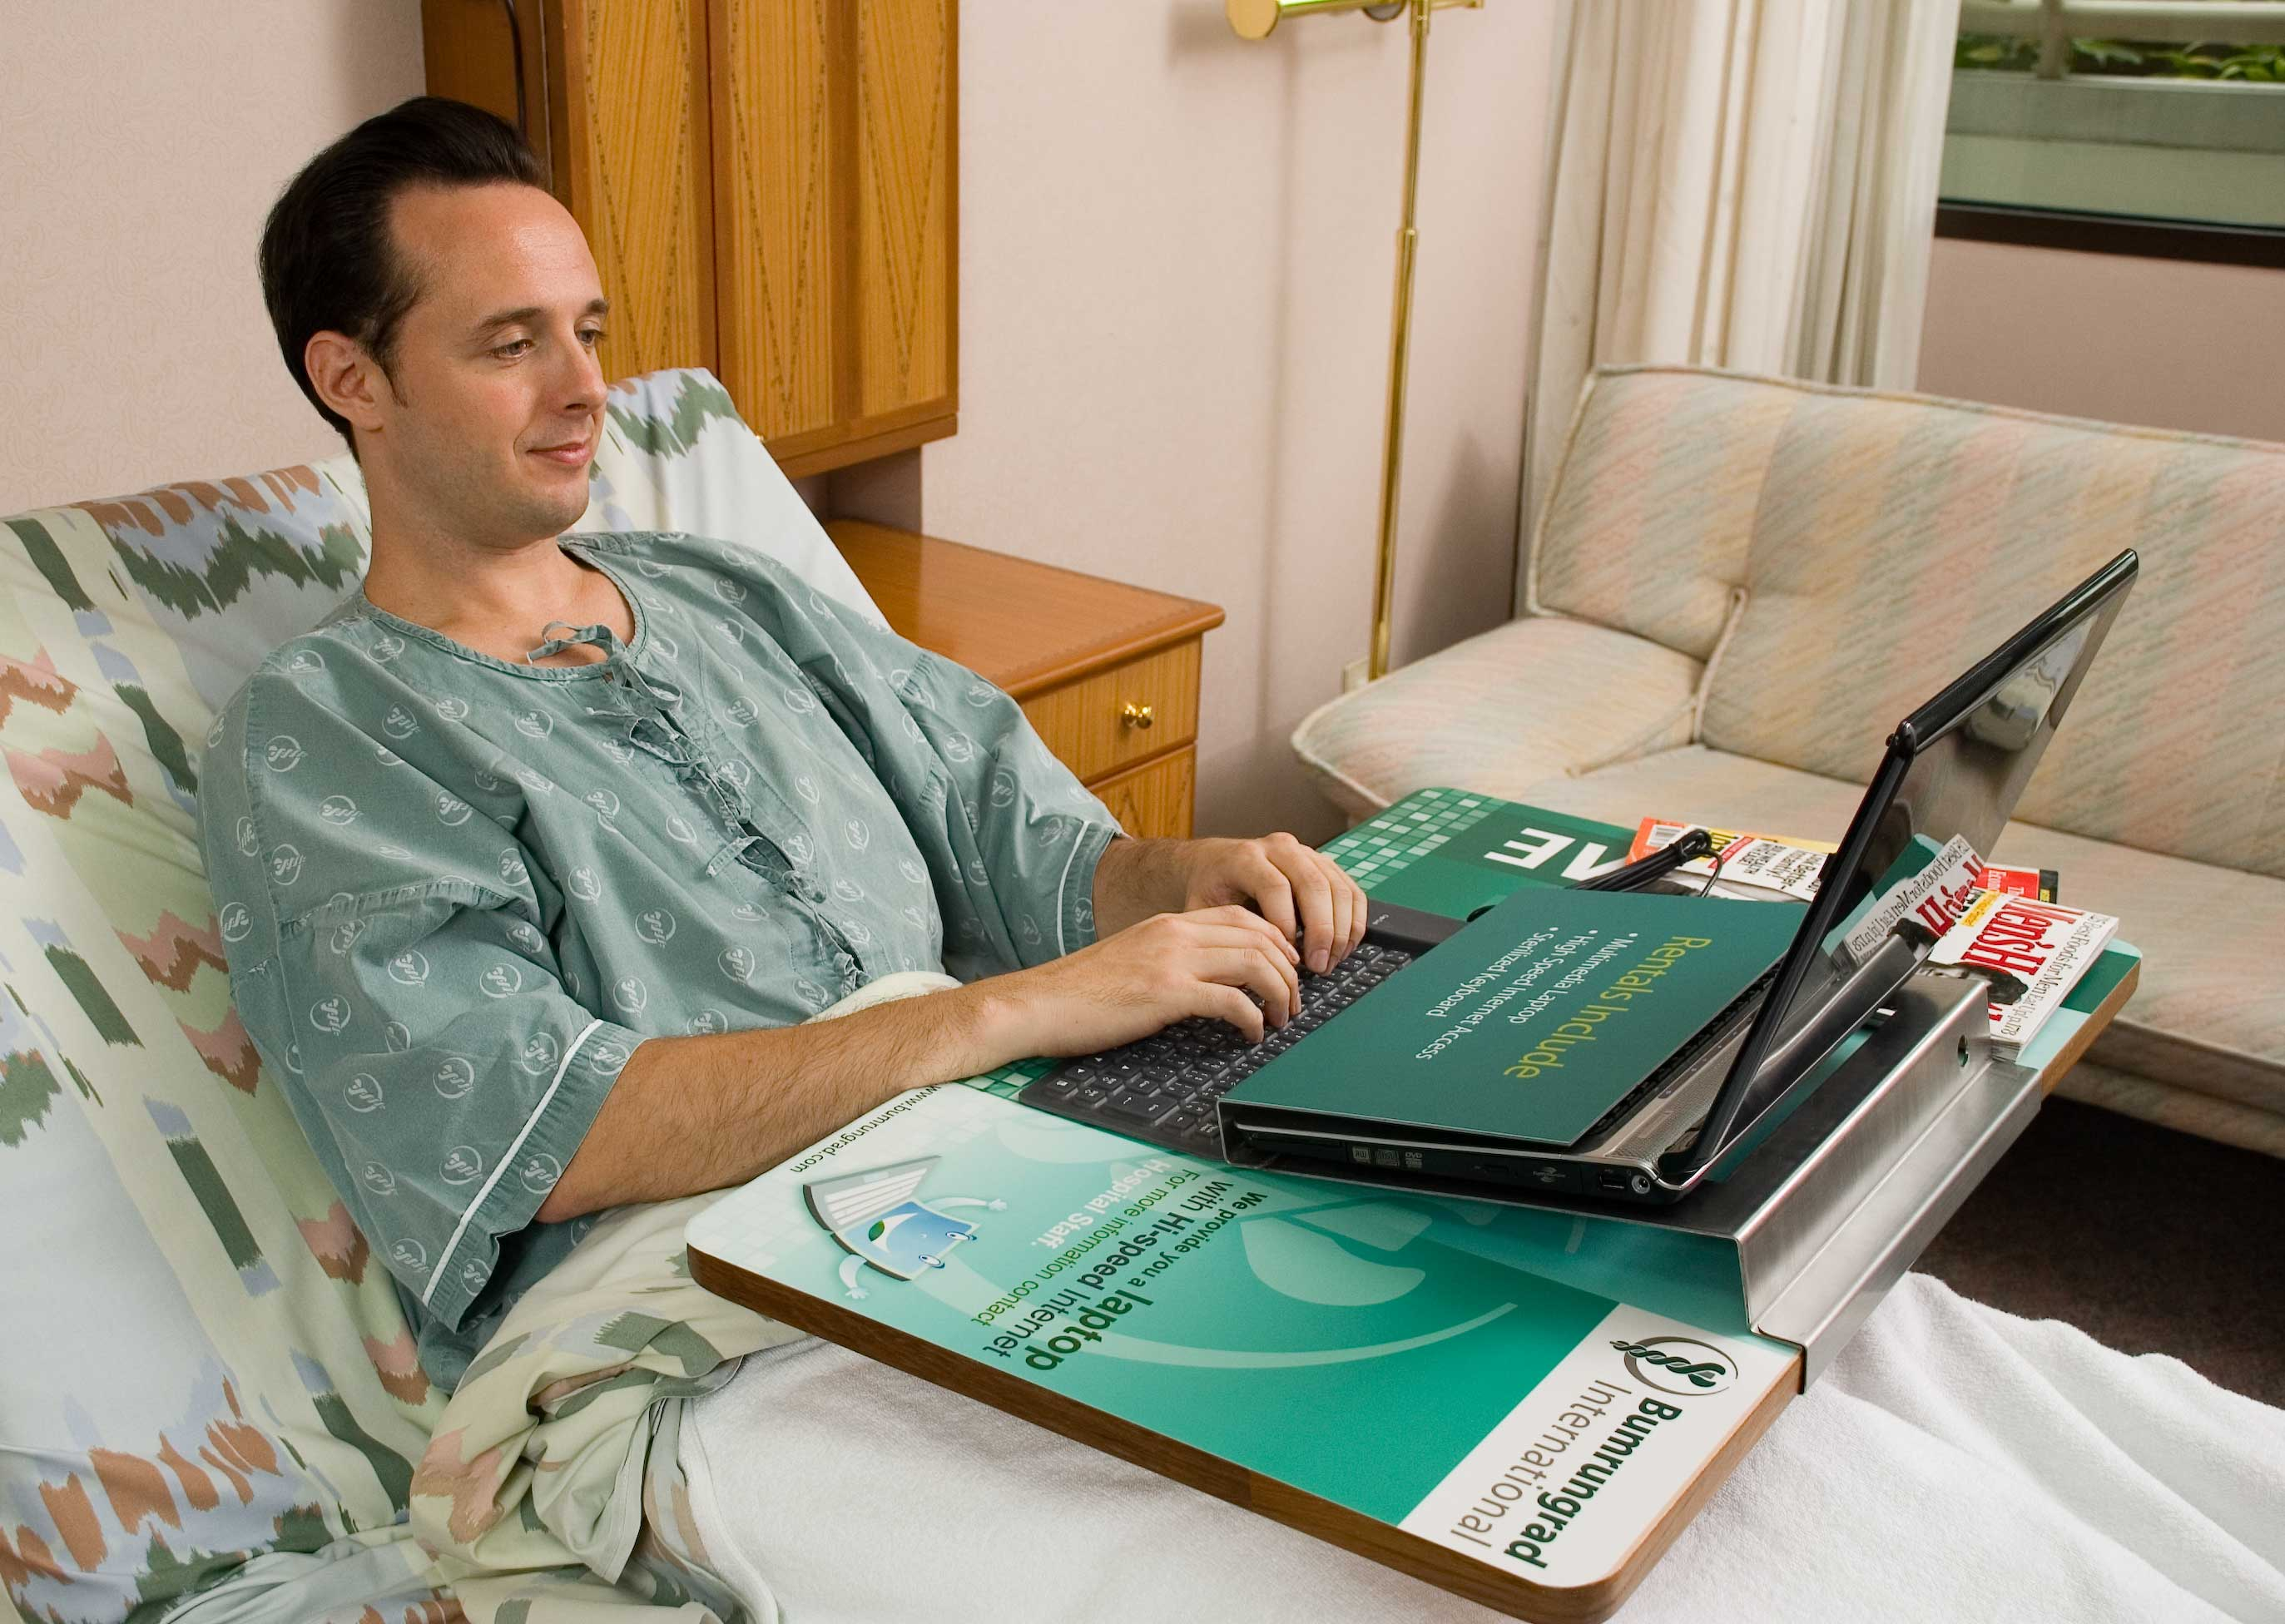 Hospital Patients Pictures : for patients at bumrungrad international hospital laptops for patients ...